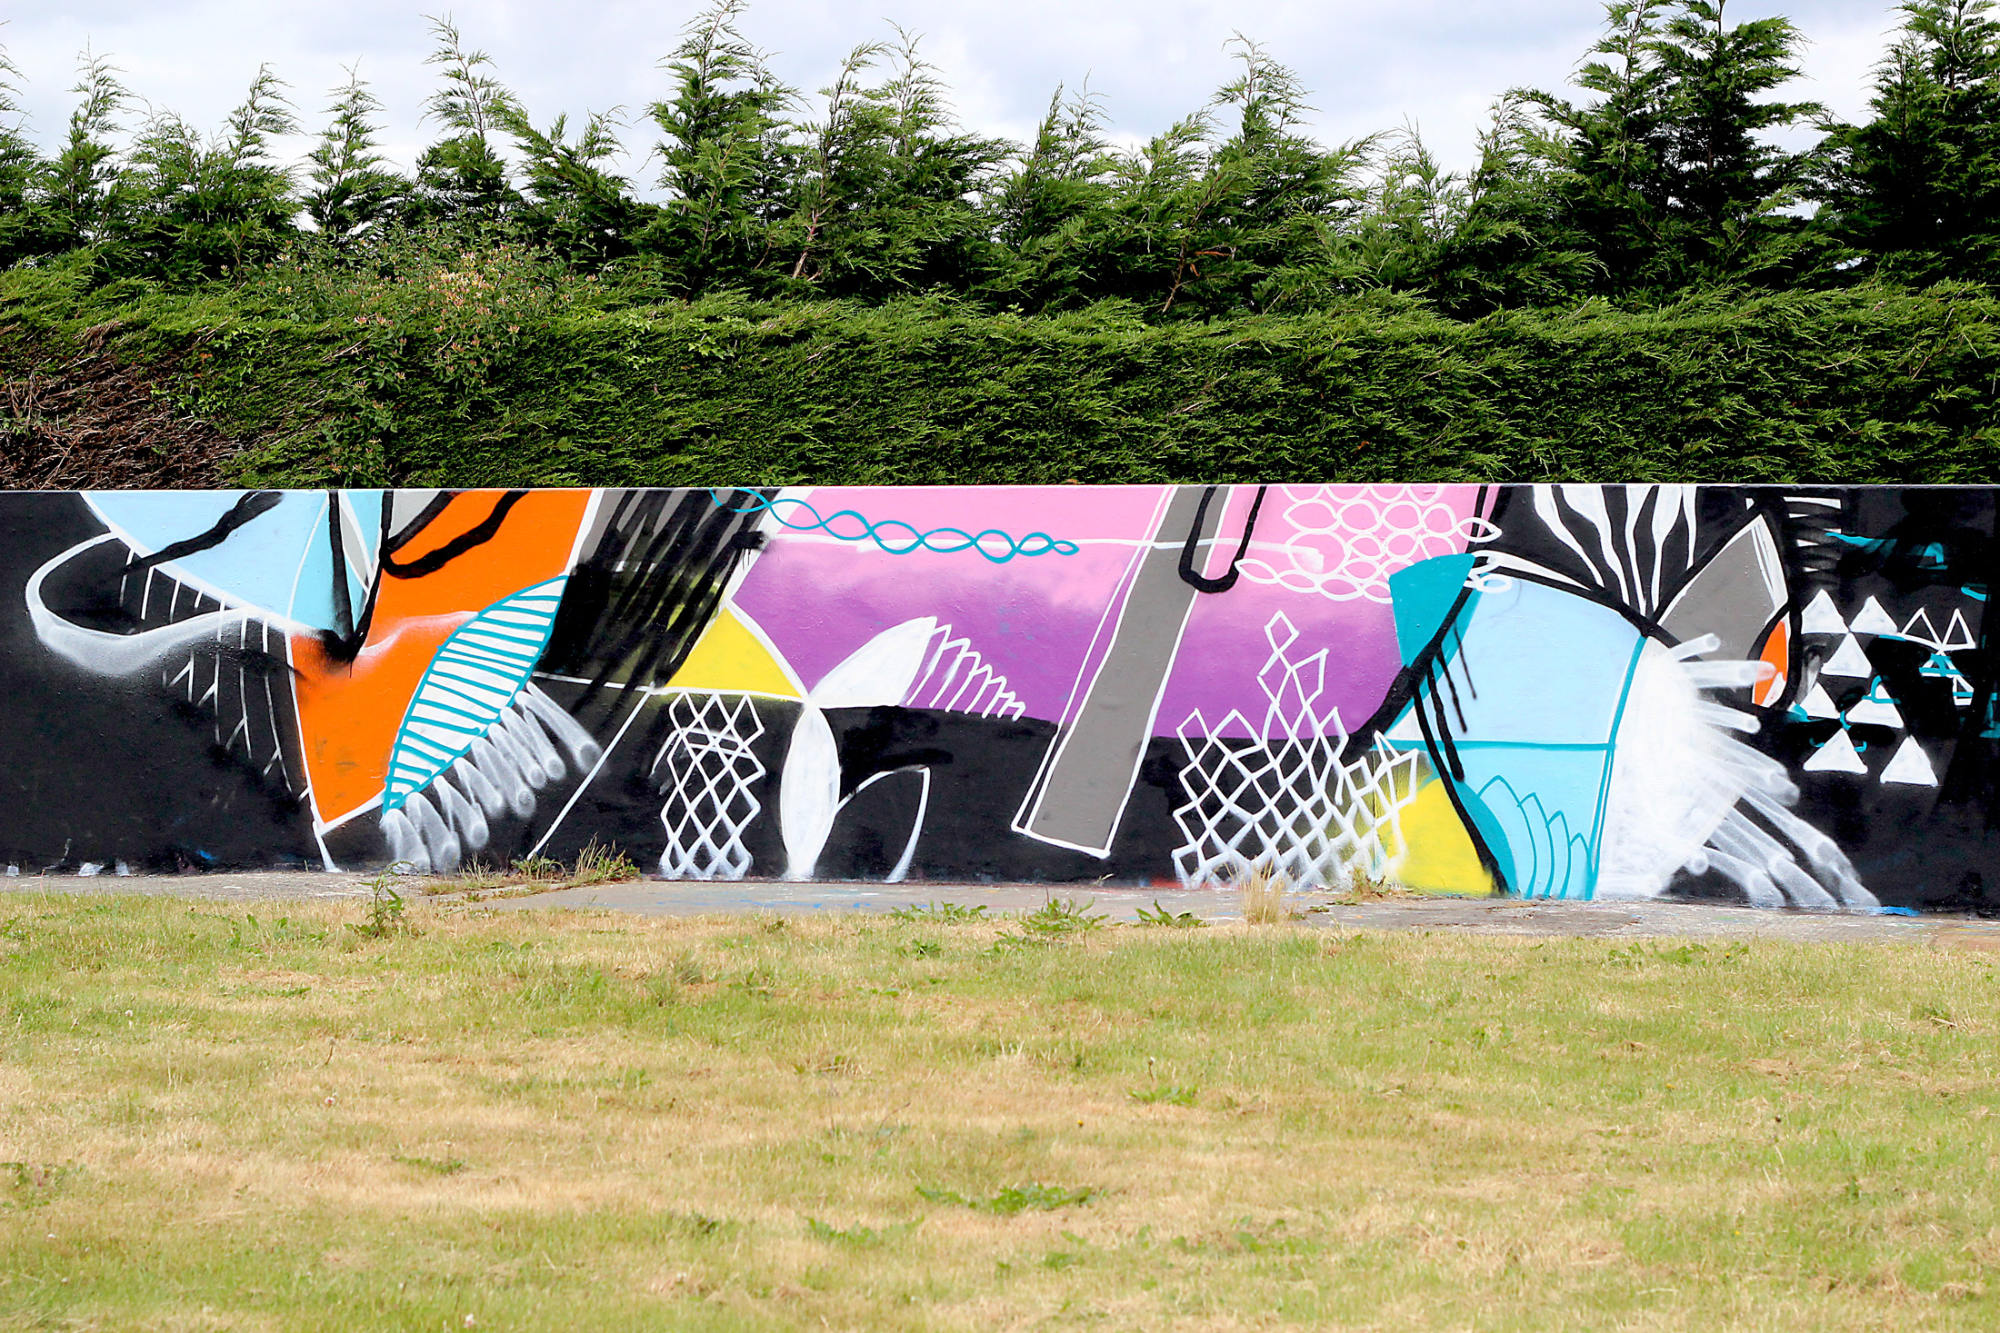 abstract-graffiti-mural-callington-street-art-cornwall-2020